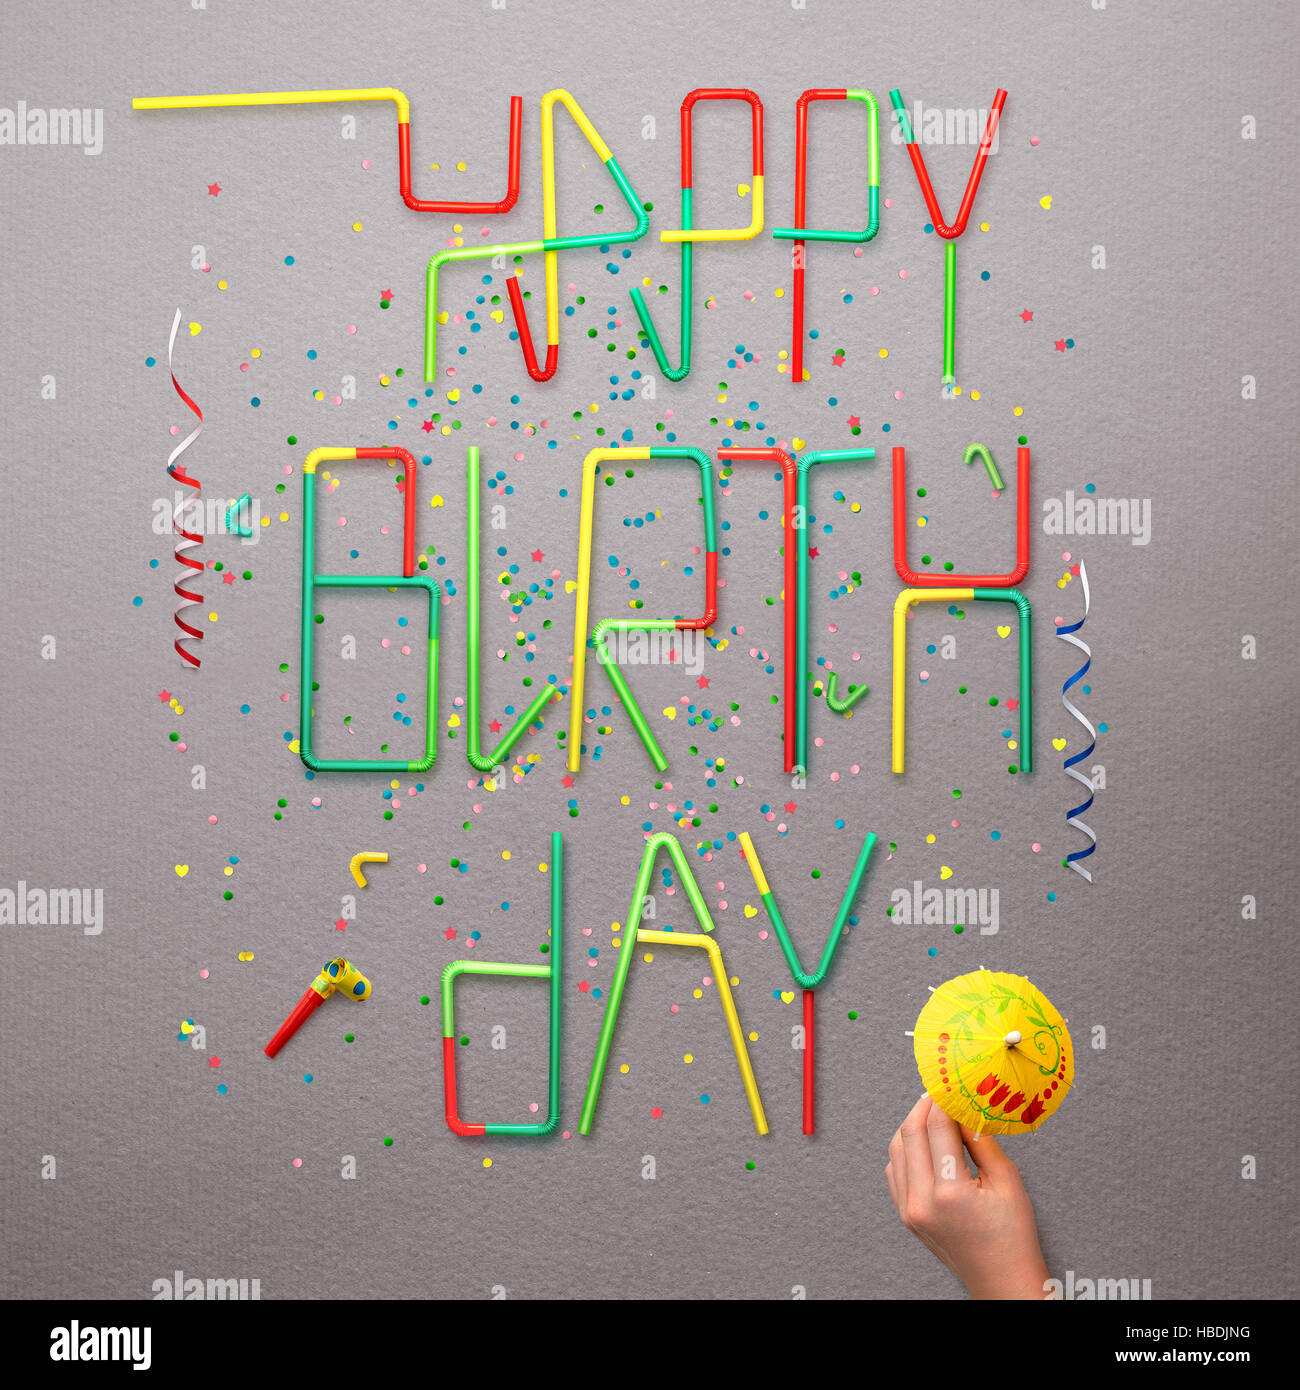 Creative still life photo of happy birthday sign made of cocktail straws with confetti and serpentine on grey background. - Stock Image